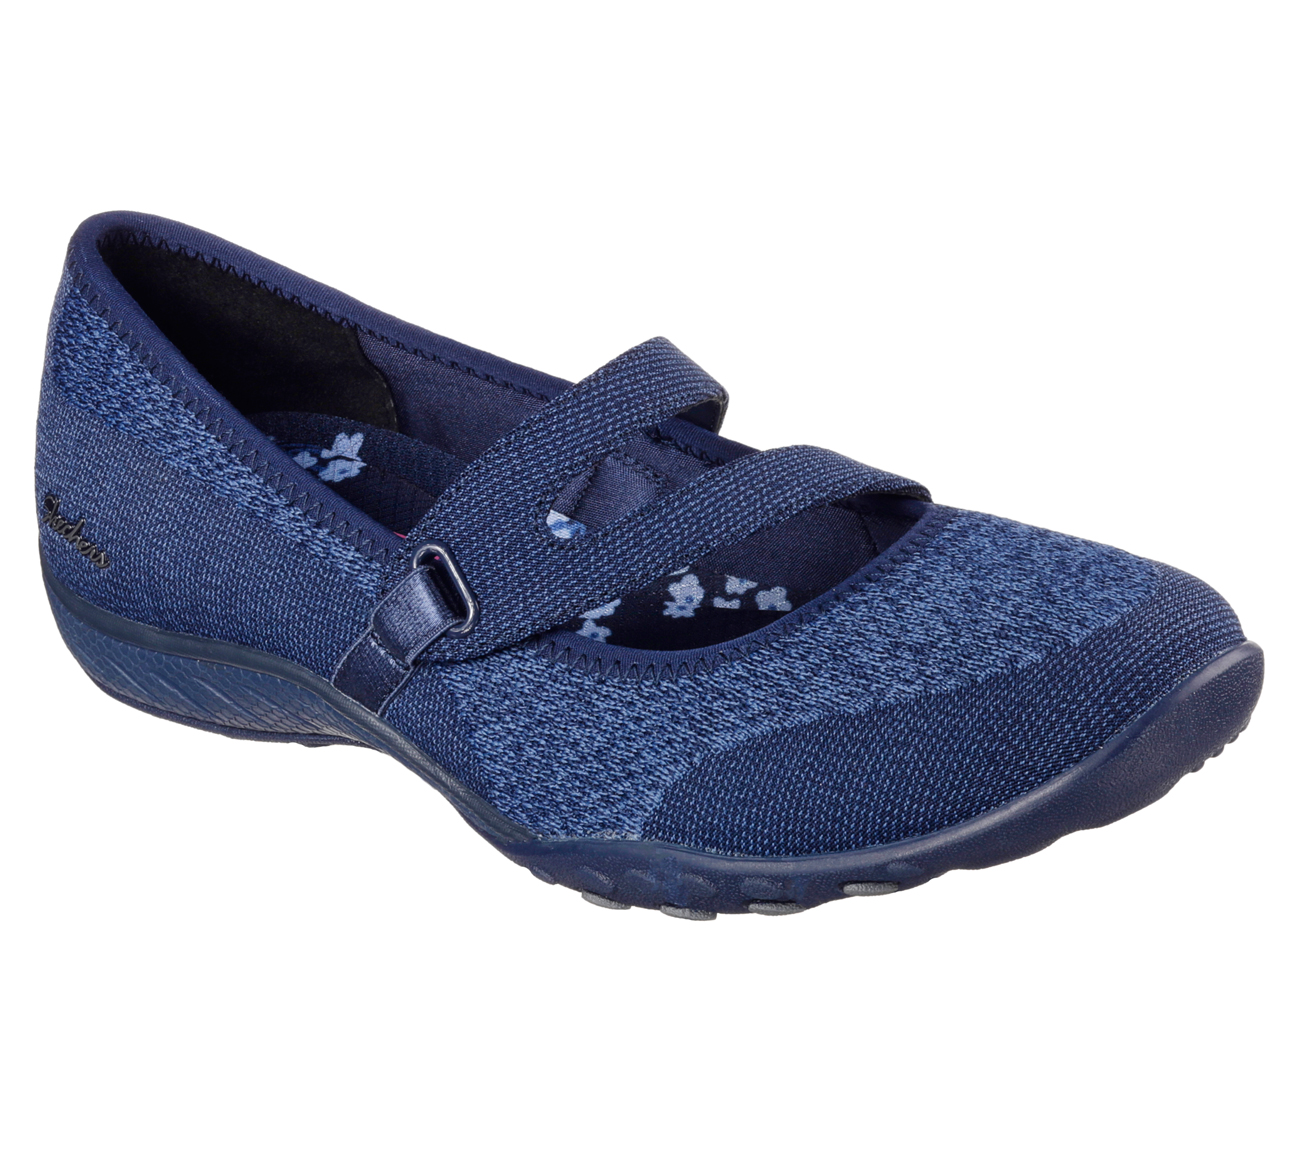 Sketchers Active Relaxed Fit Mary Jane Shoe